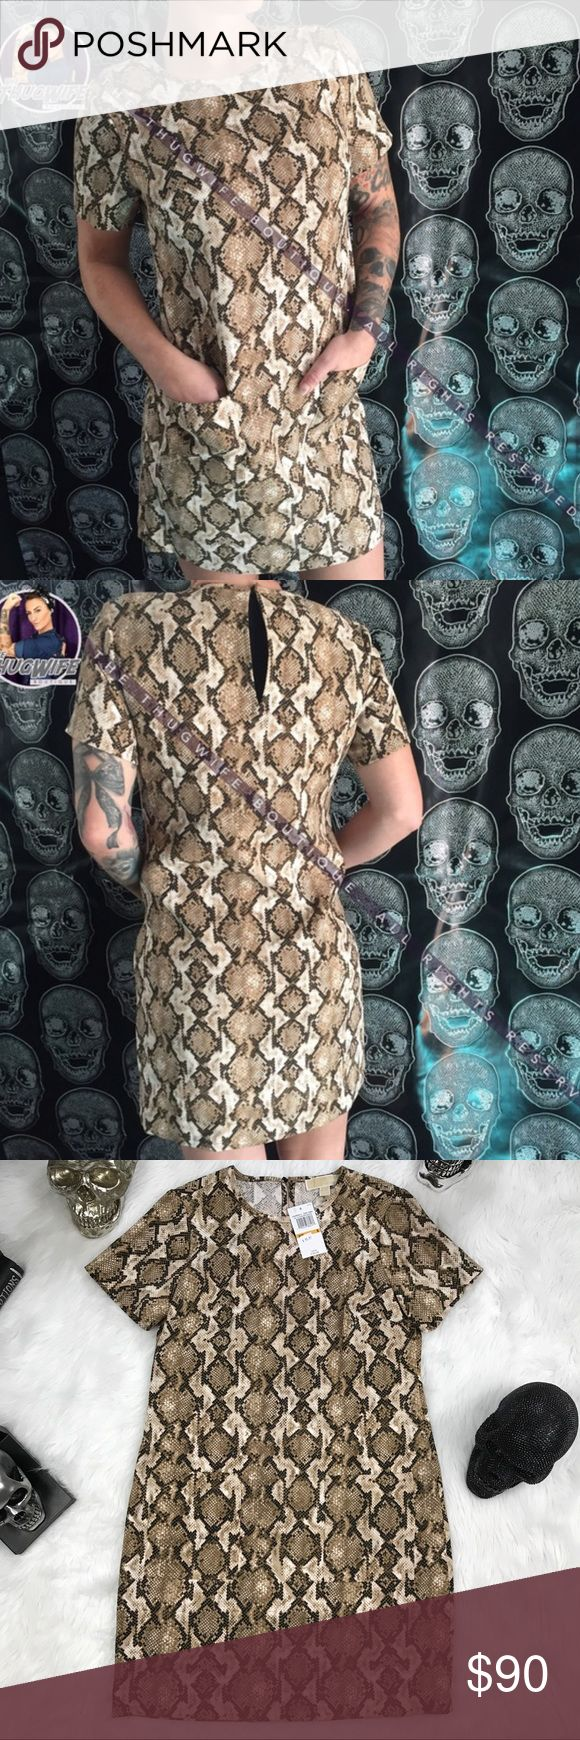 Michael Kors olive snake skin shift dress NEW WITH TAGS .     Beautiful shift dress with front pockets . Has button closure and keyhole oval opening at the back of the neck . Stunning light green / tan colored pattern. Two small pockets on front . Short sleeve . Python snake skin print casual dress .    💙 please use the offer button  🛍 BUNDLE FOR 10% OFF •   🚭smoke free  🌟 5 star rating   www.thethugwife.com 💀 @thethugwifeboutique             🚫 🙅🏻 N O   TRADES 🙅🏻 🚫 Michael Kors…